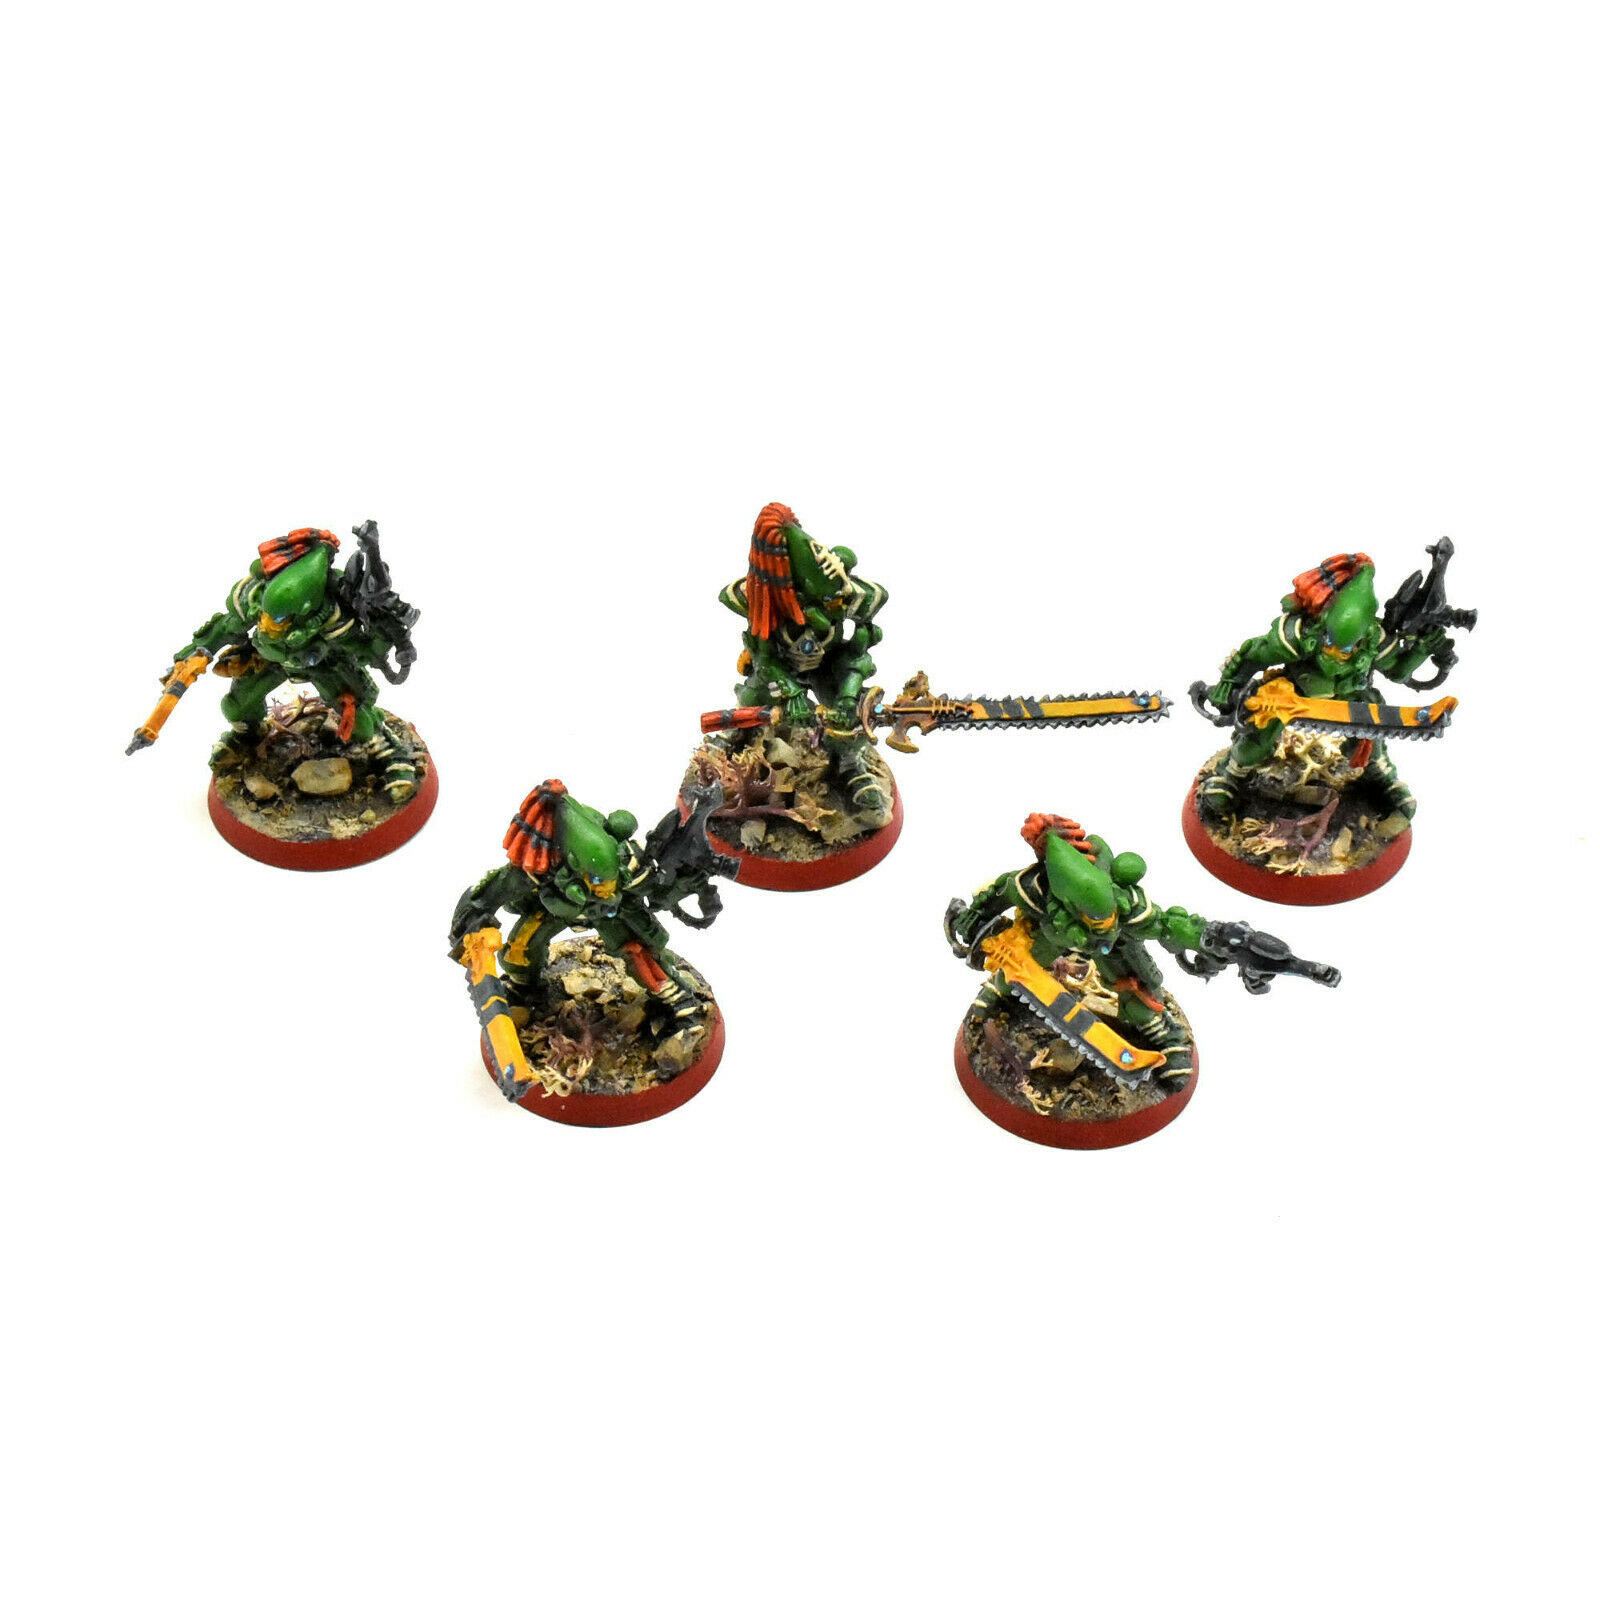 CRAFTWORLDS 5 striking scorpions  1 WELL PAINTED Warhammer  40K Eldar FINECAST  le plus récent